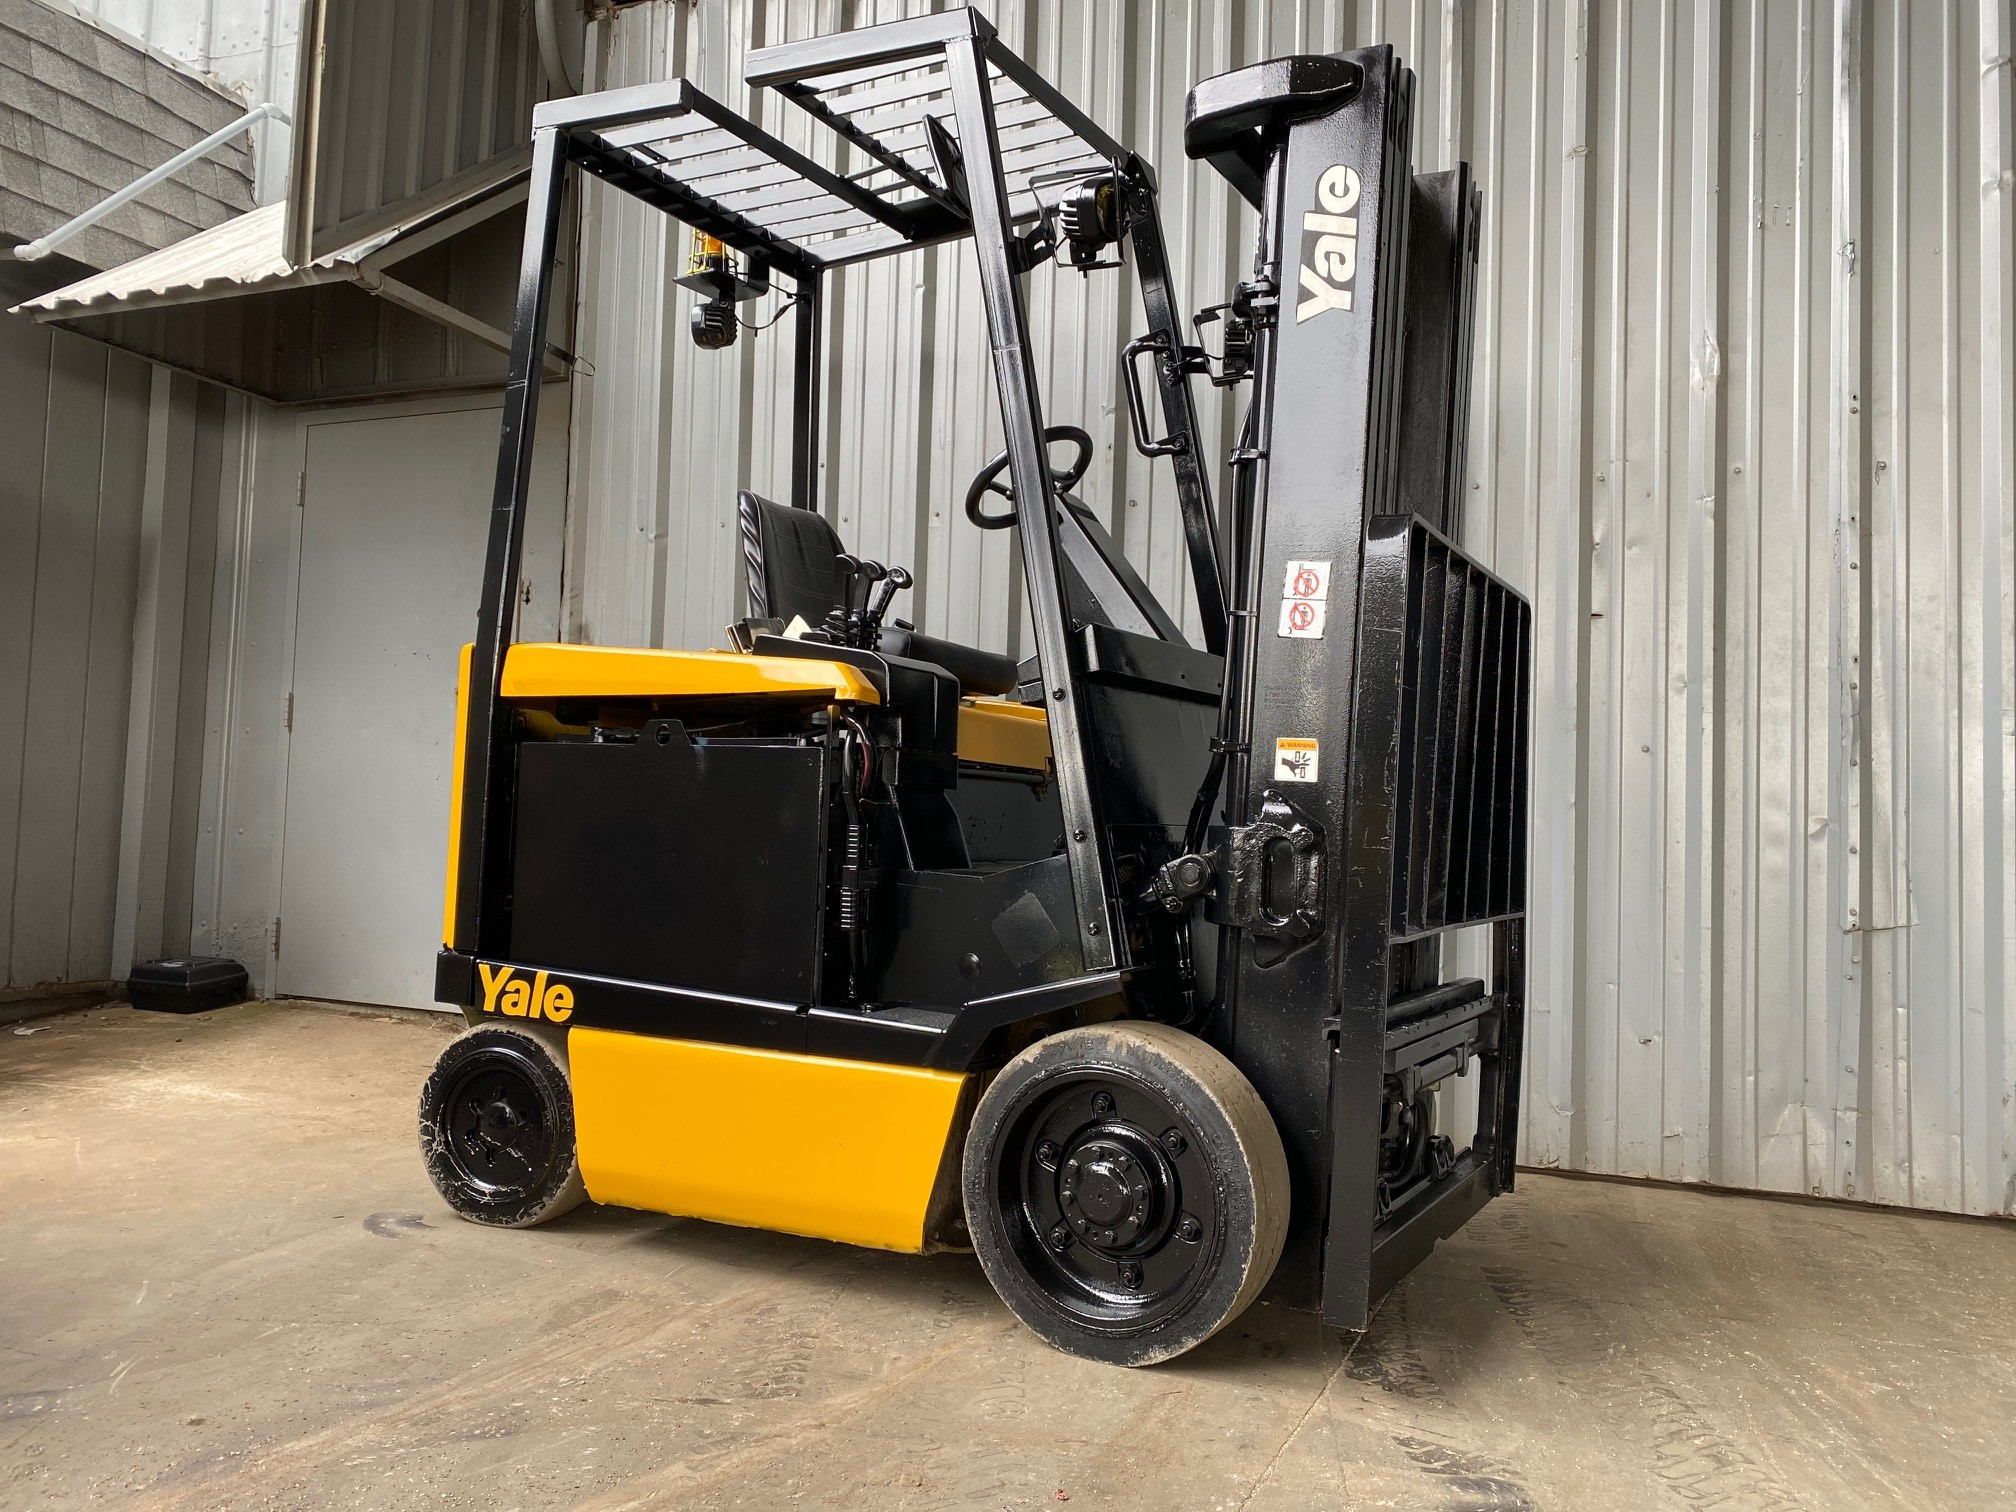 Used, 2007, Yale, ERC050GHN36TE082, Forklifts / Lift Trucks